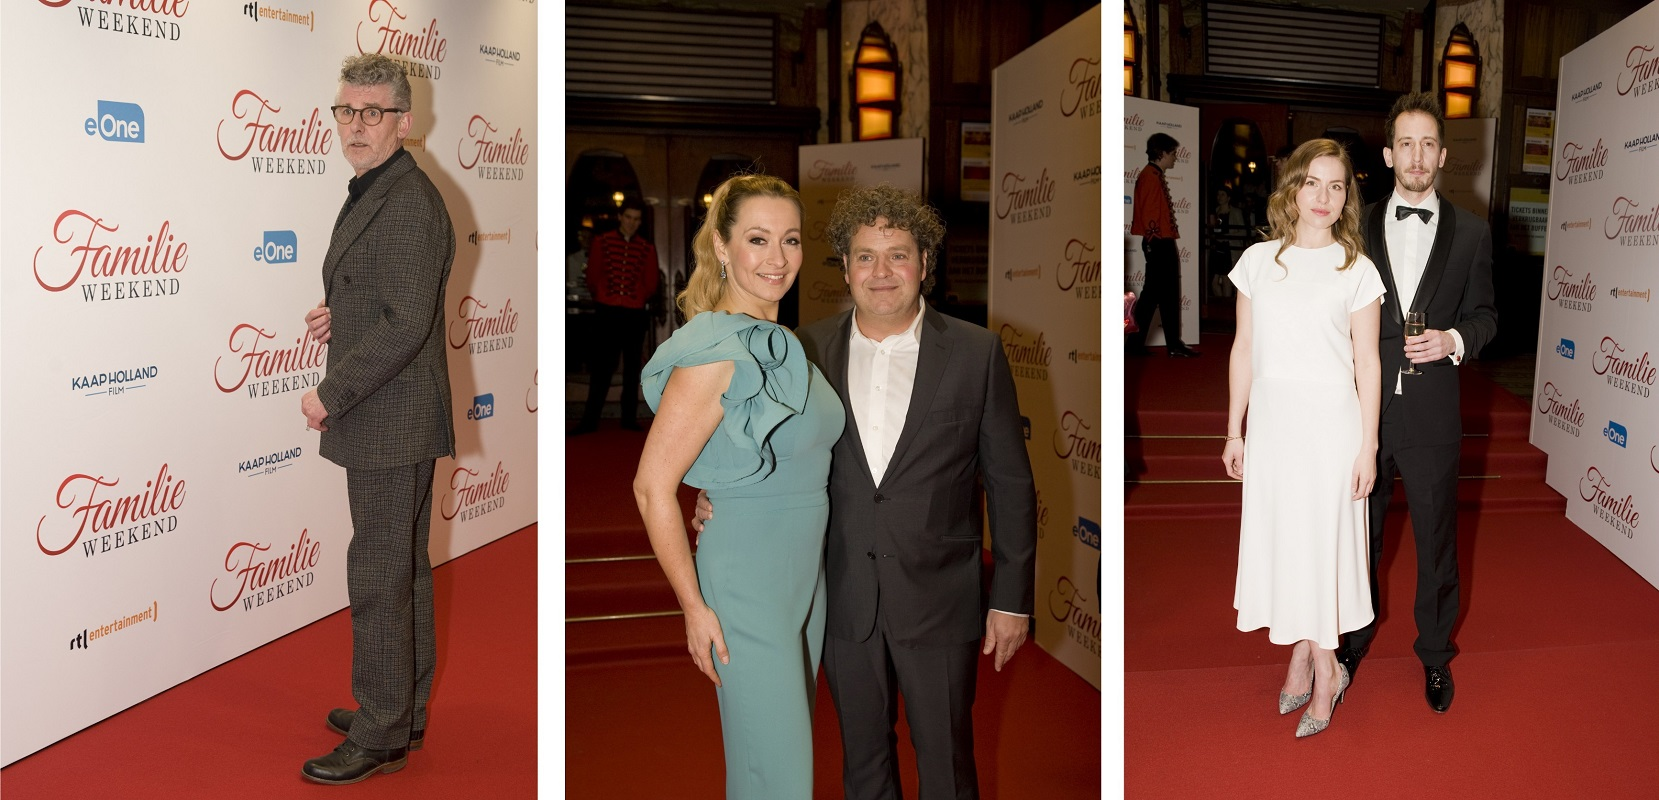 Premiere Familieweekend Glamourland (3)